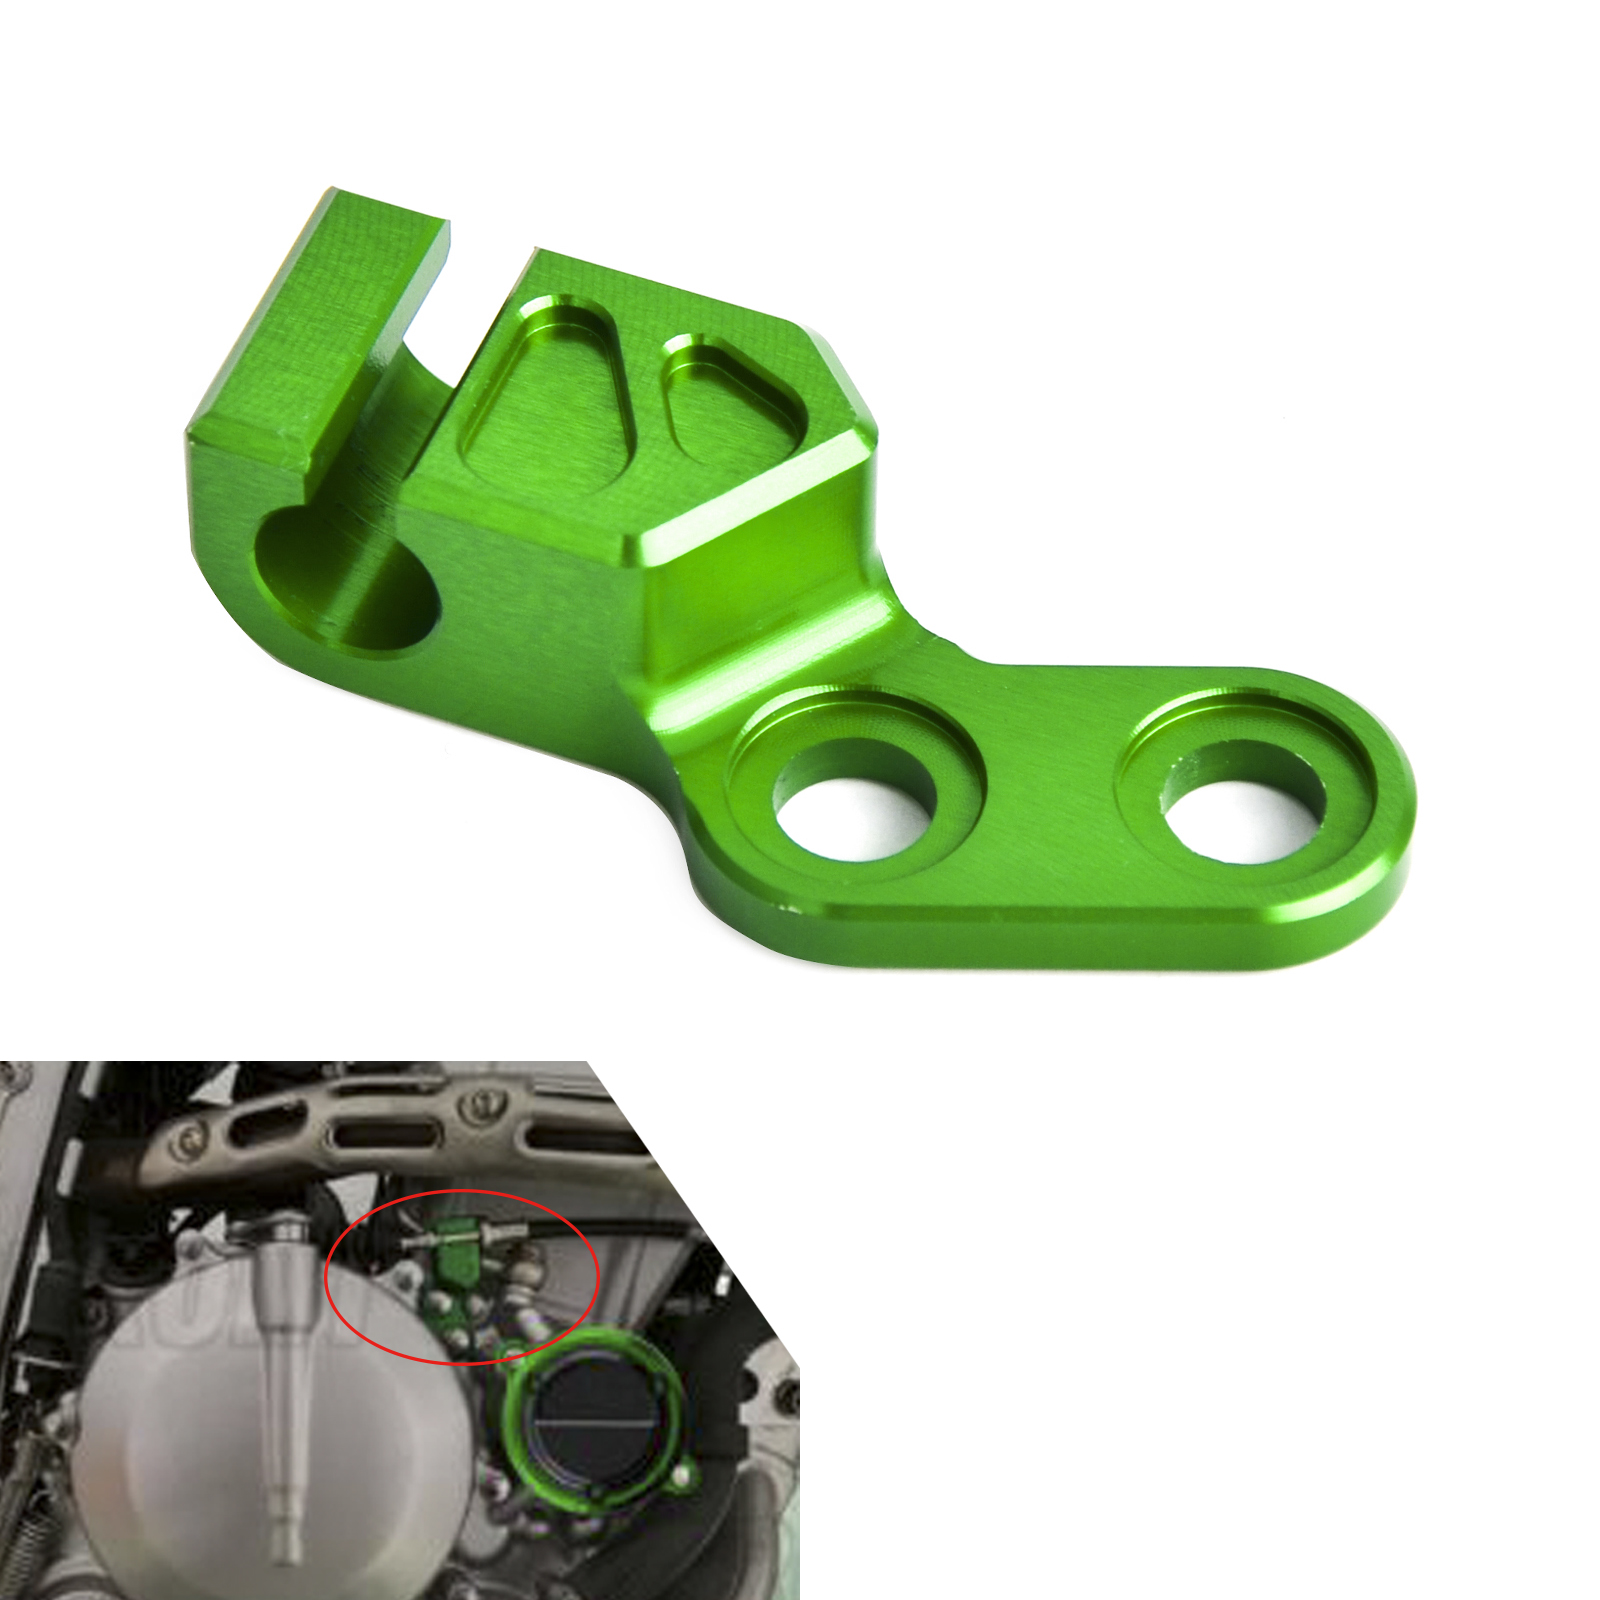 Ltr450 Clutch Cable Holder Stopper